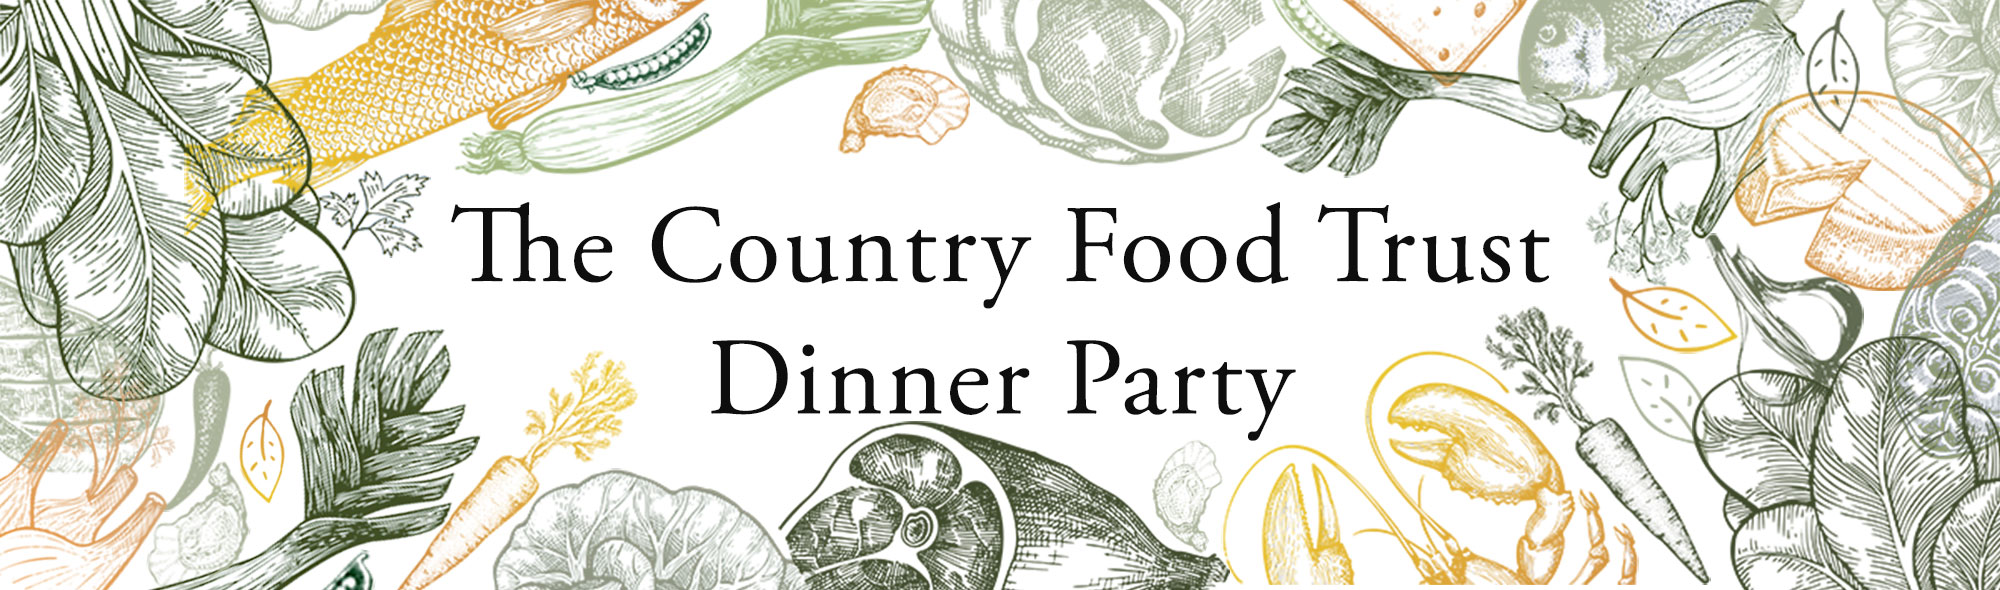 The Country Food Trust Dinner Party